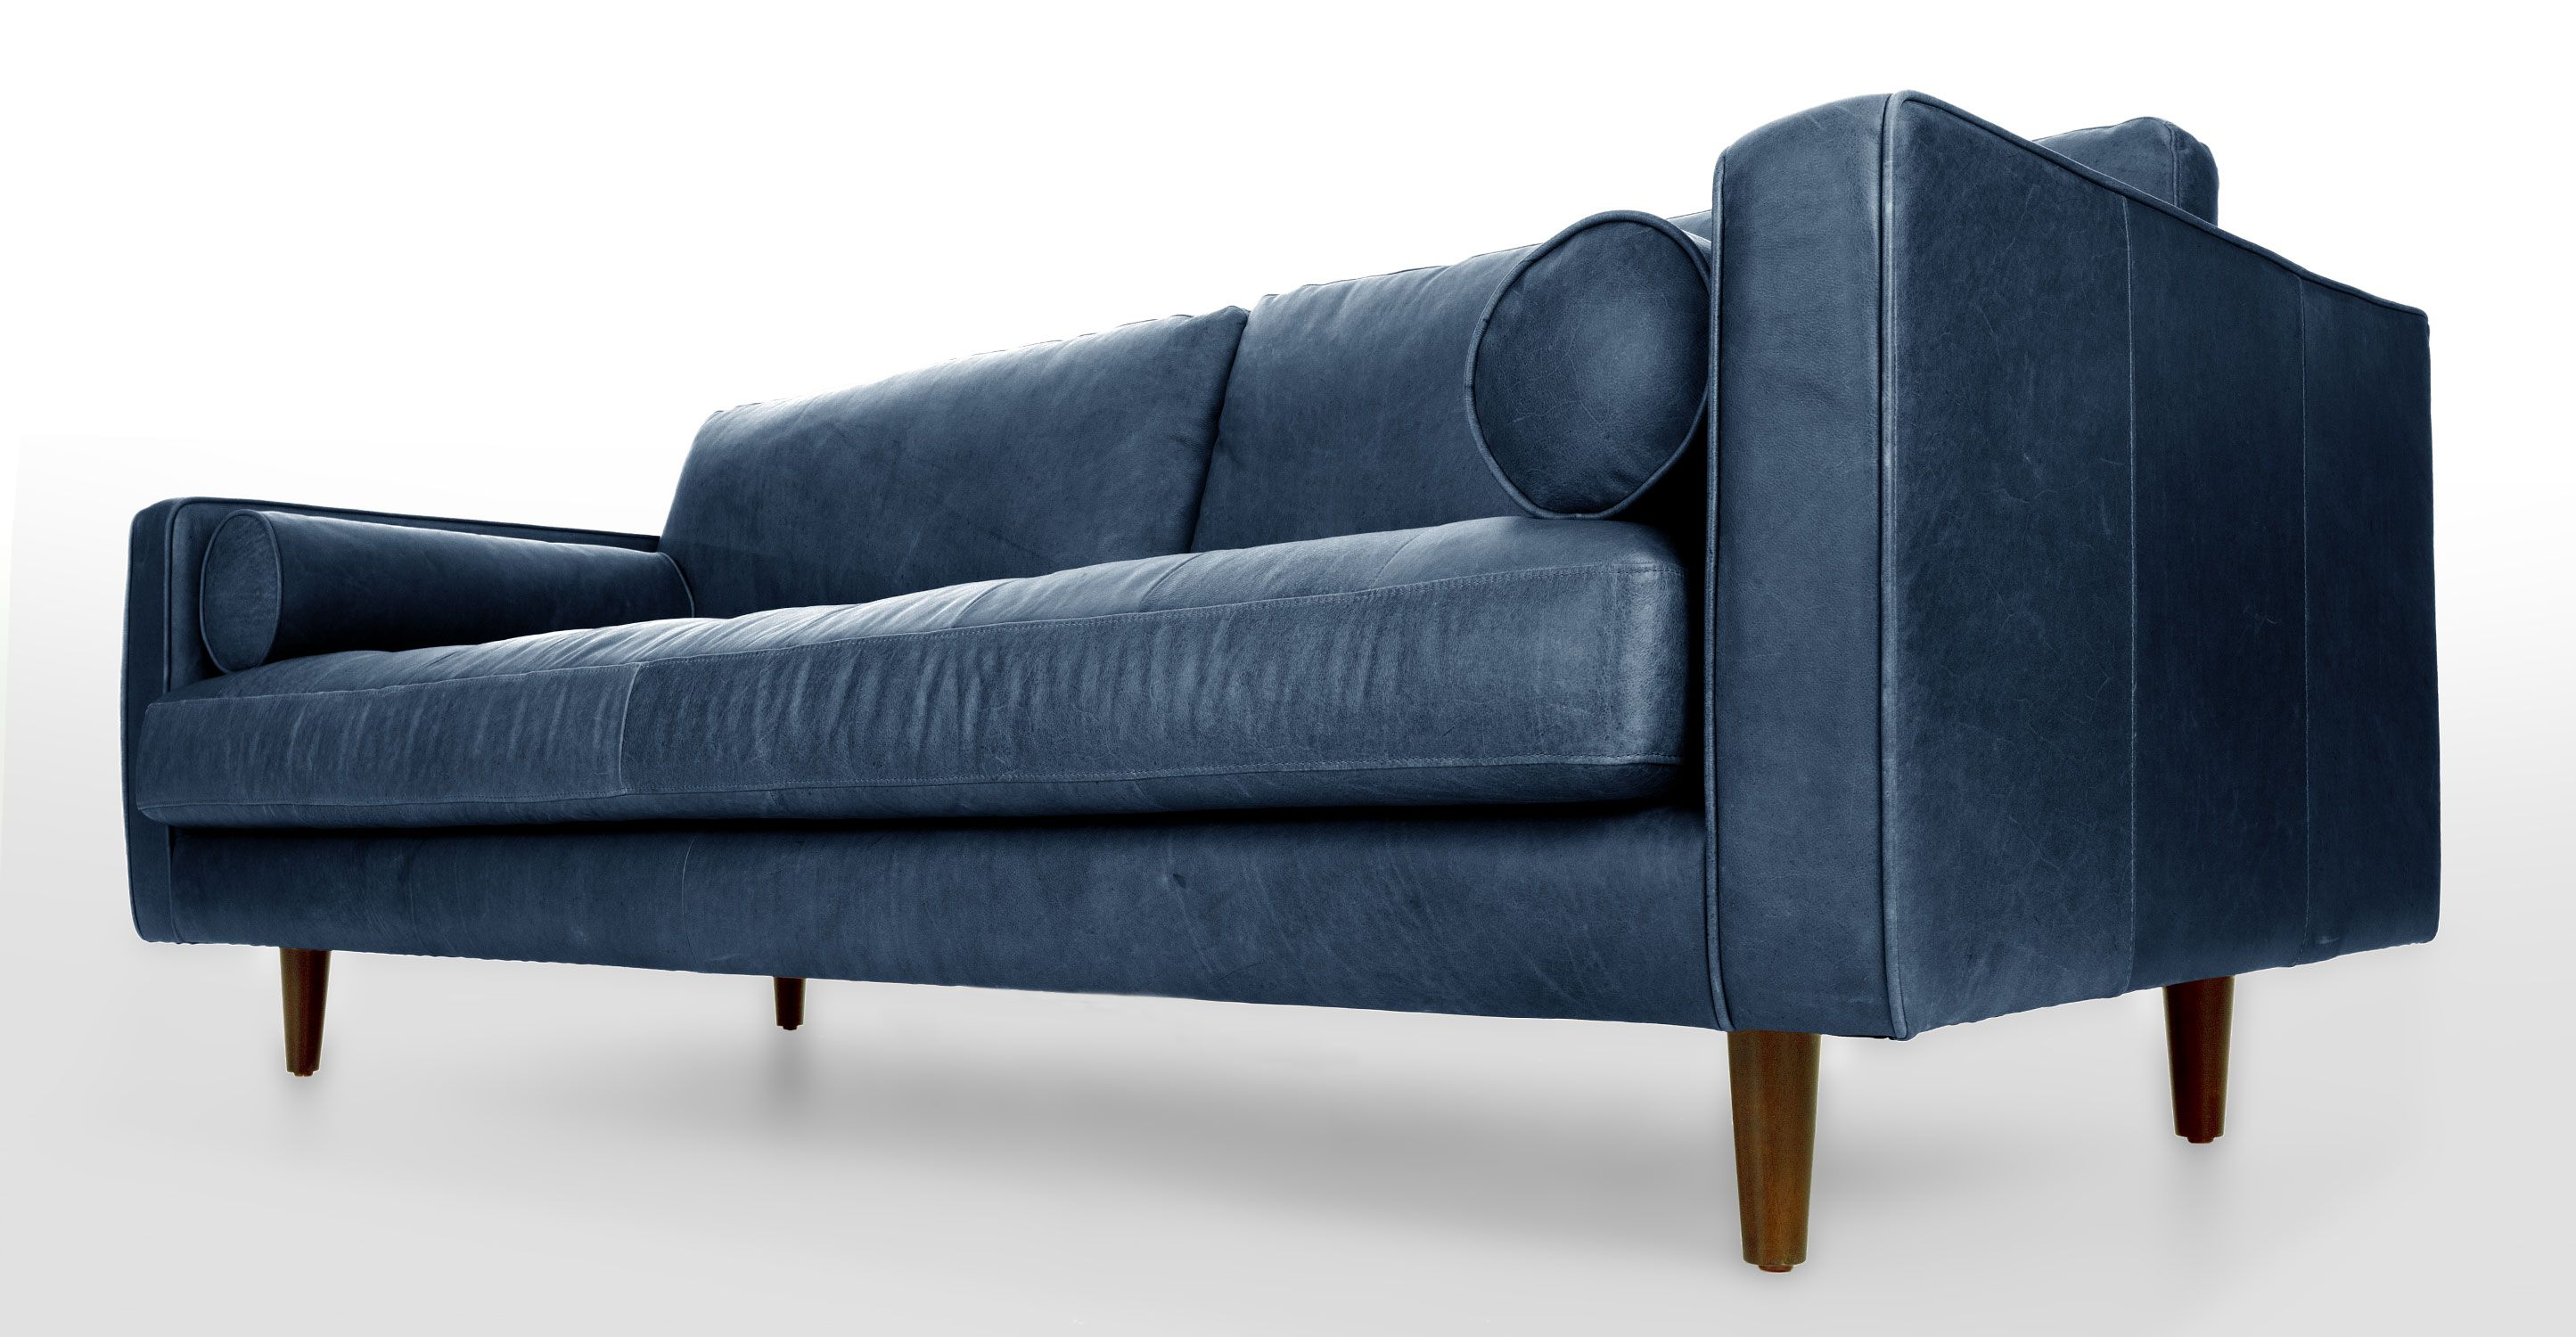 Sven Oxford Blue Sofa Blue Leather Sofa Sofa Furniture Most